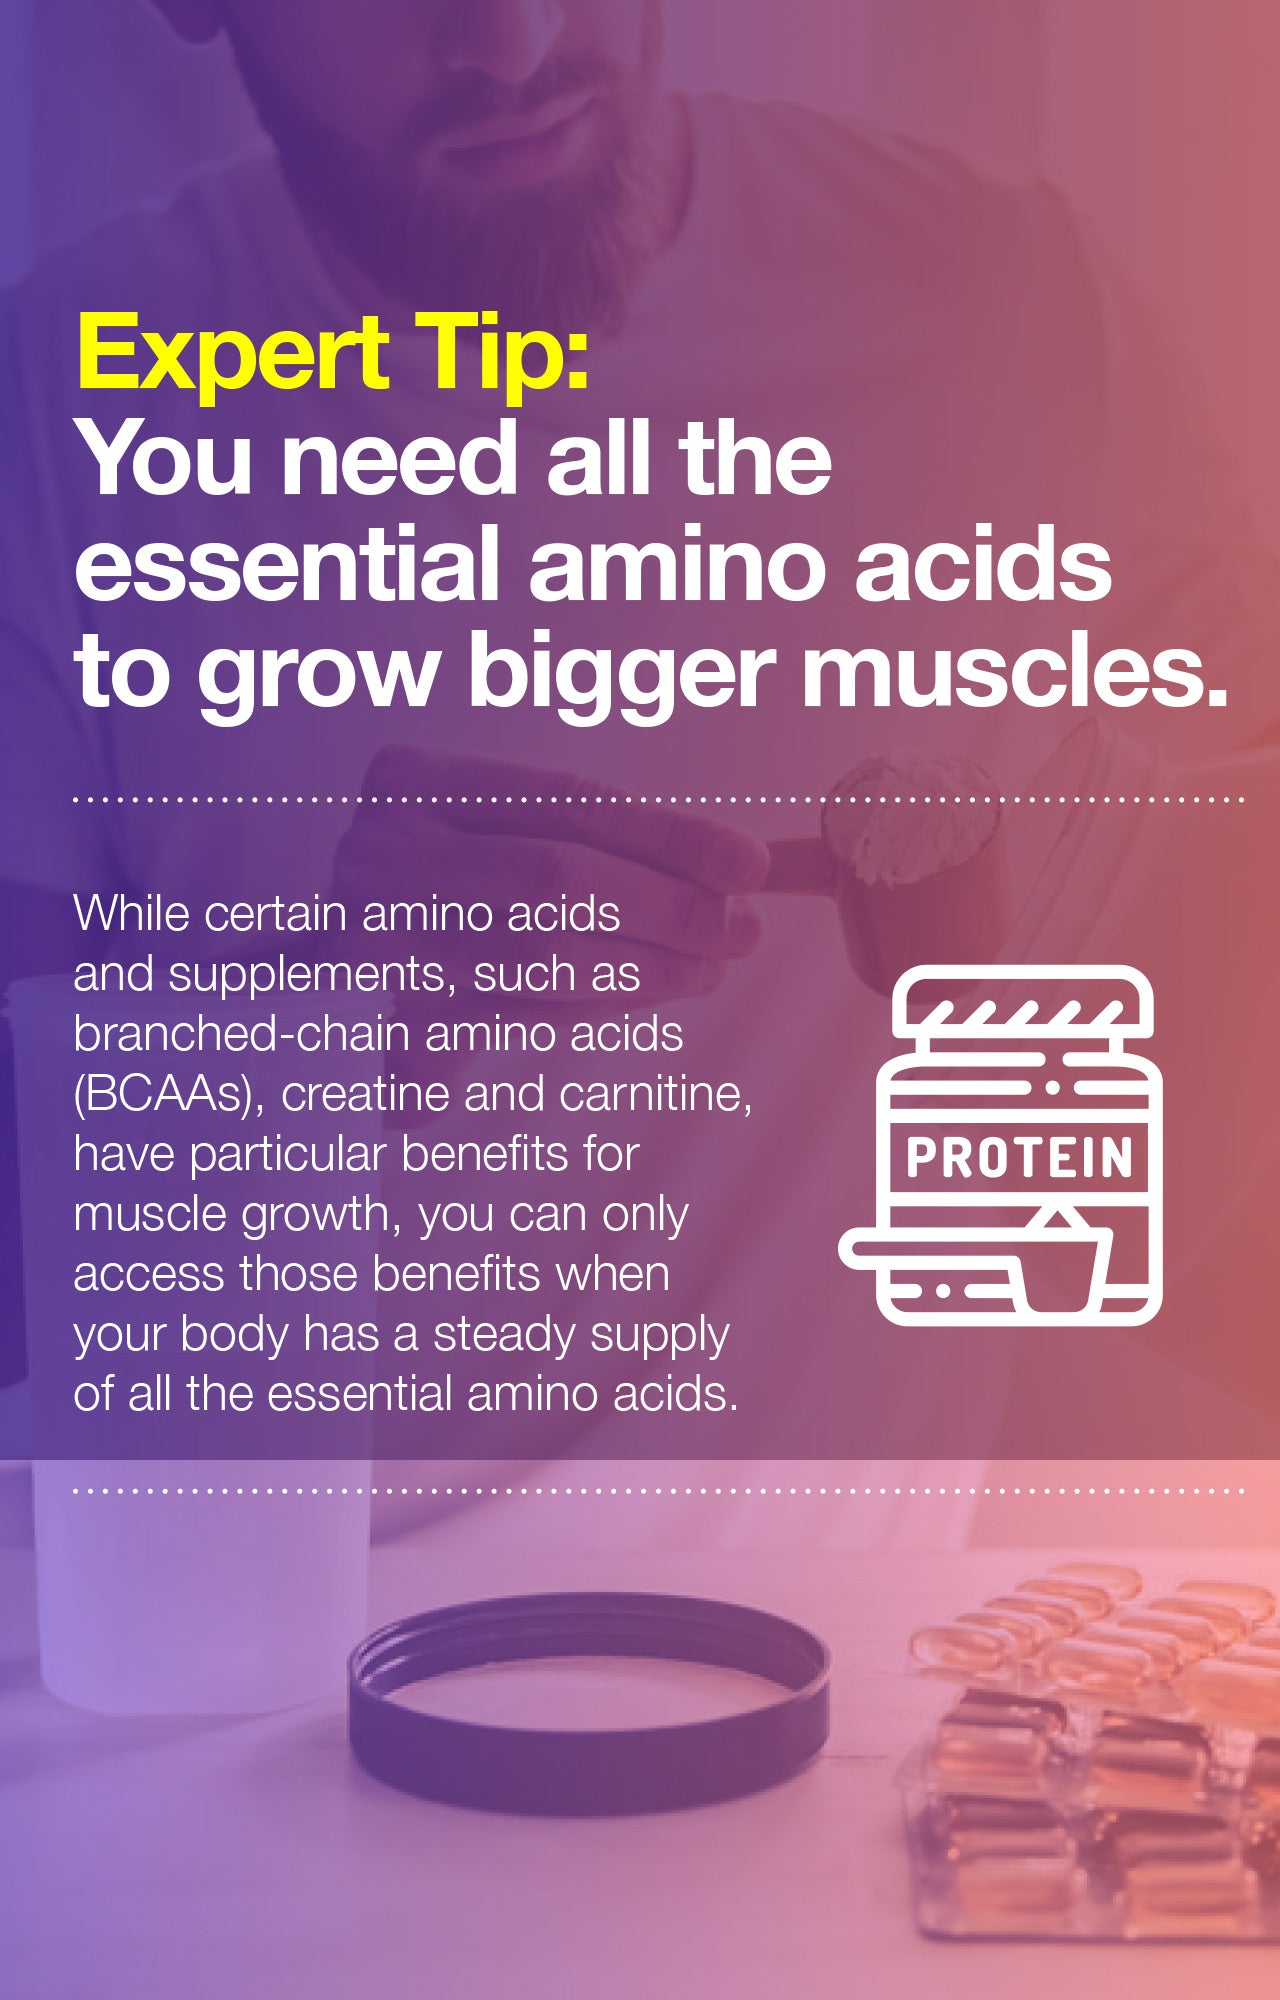 Essential amino acids for bigger muscles